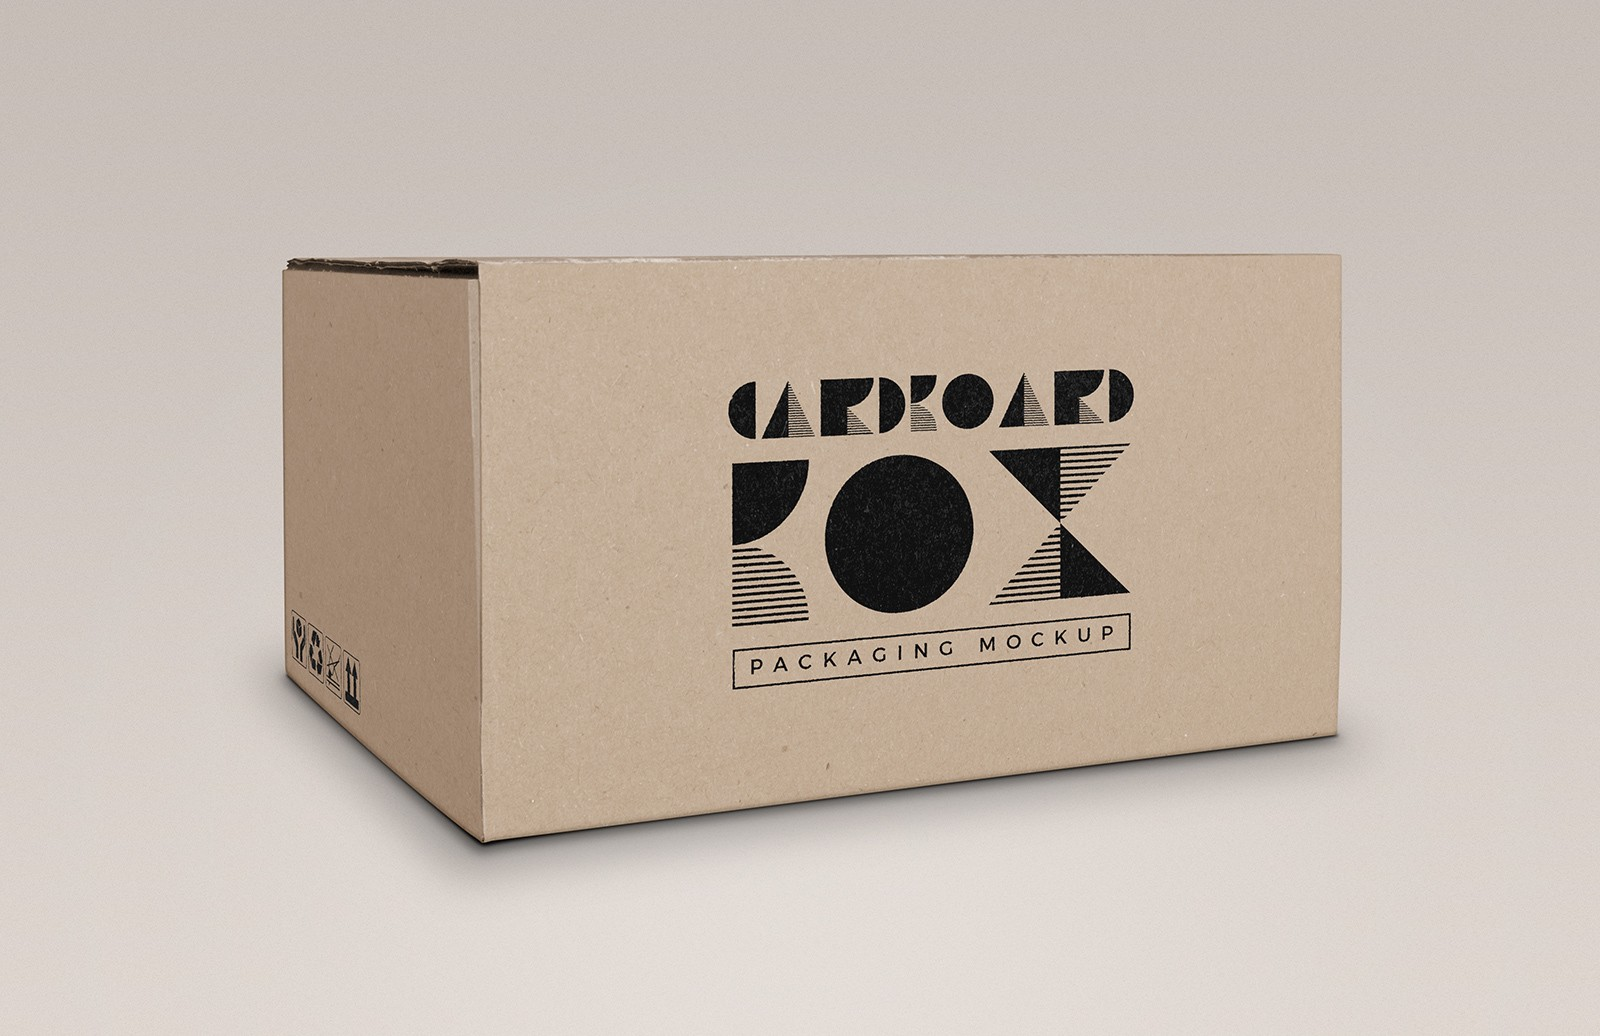 Cardboard Box Packaging Mockup